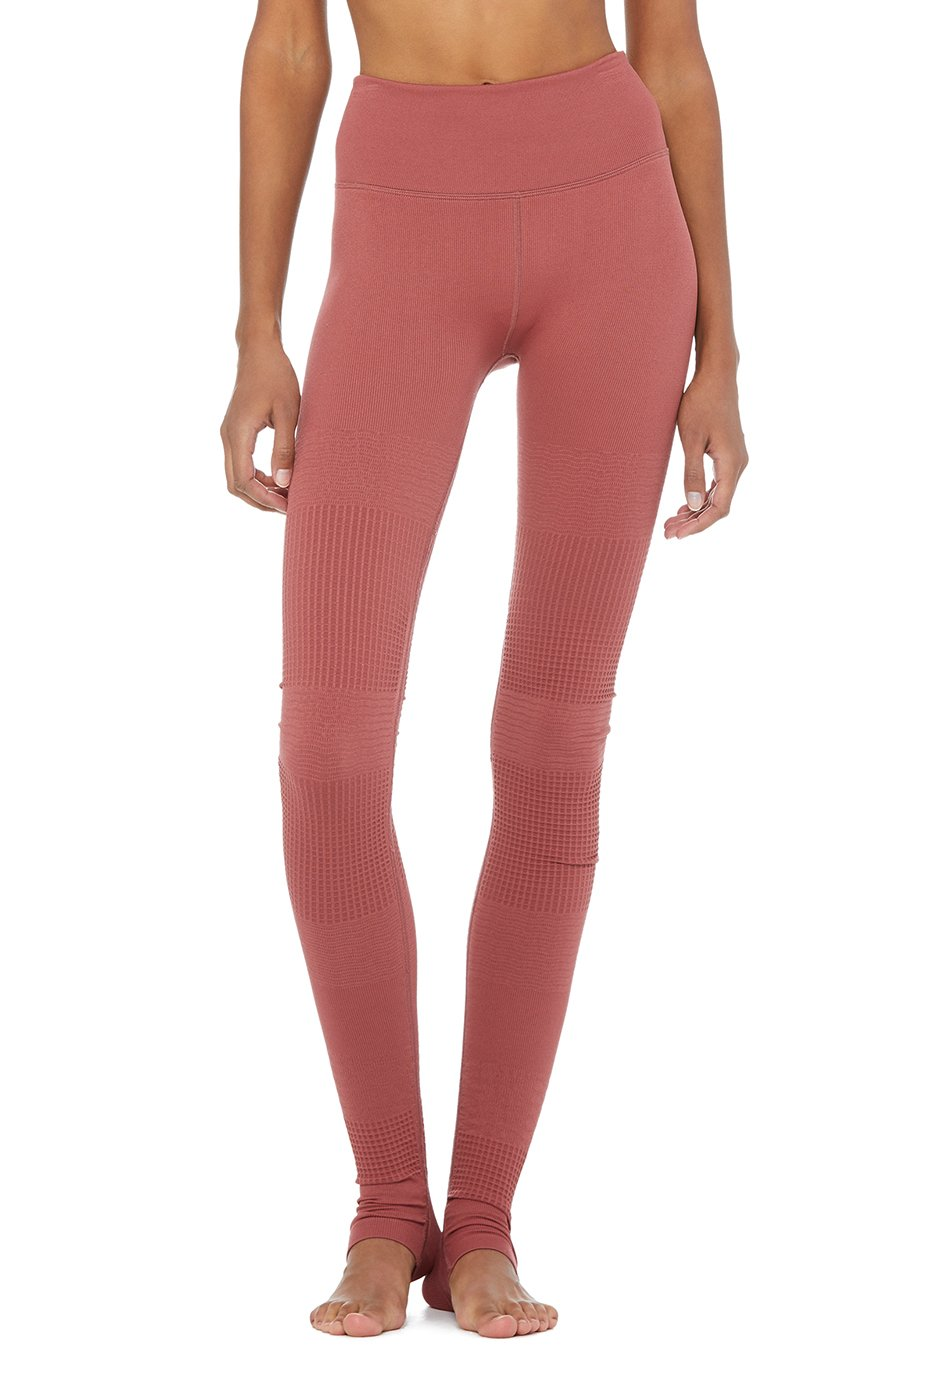 I'm absolutely in love with this color and haven't ever tried this type of Alo's legging before, so I'm excited to see how they are!